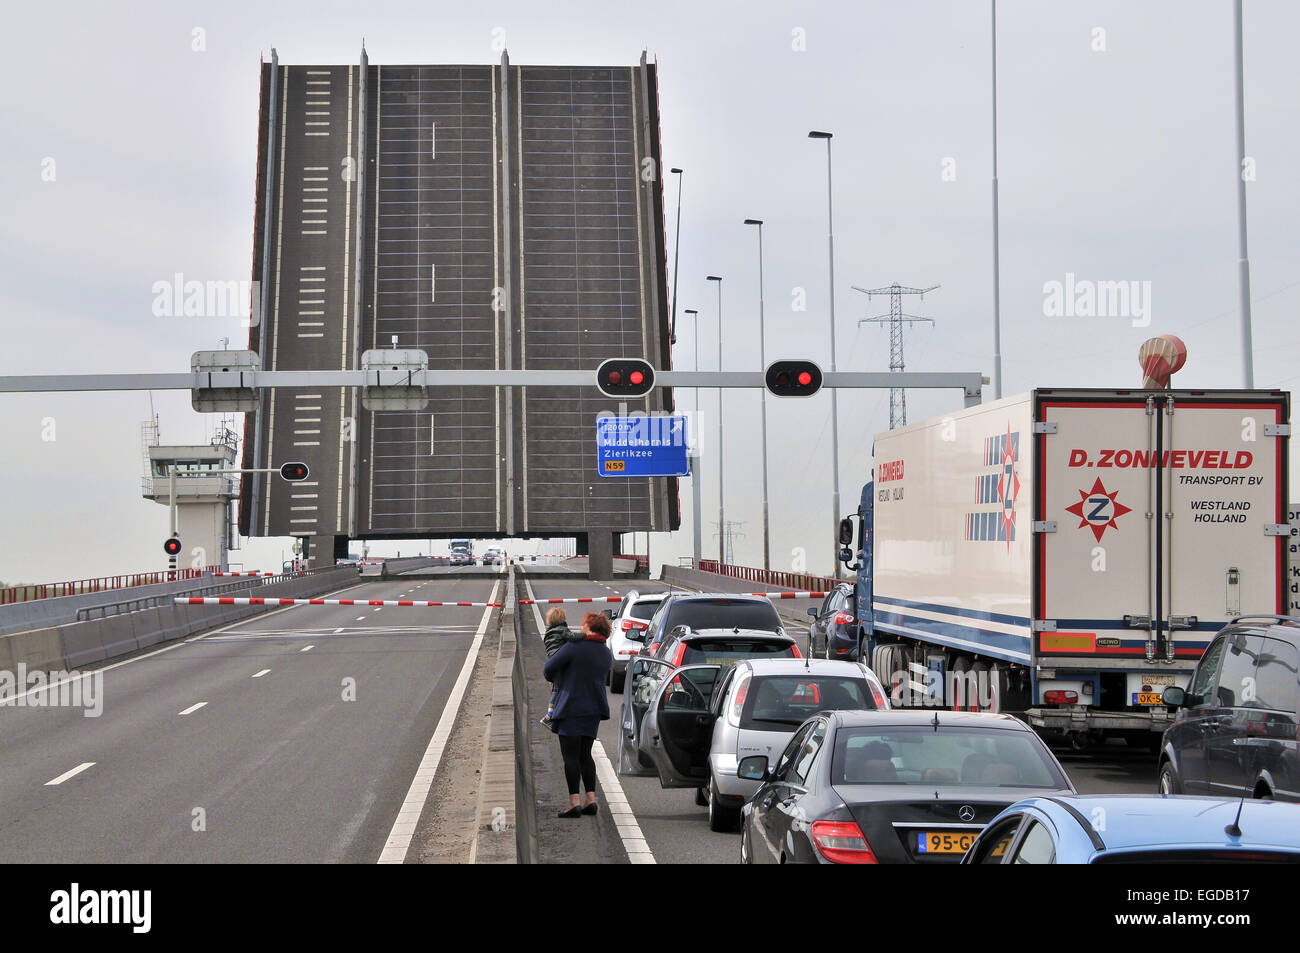 Lift bridge on the A29 south of Rotterdam, The Netherlands - Stock Image